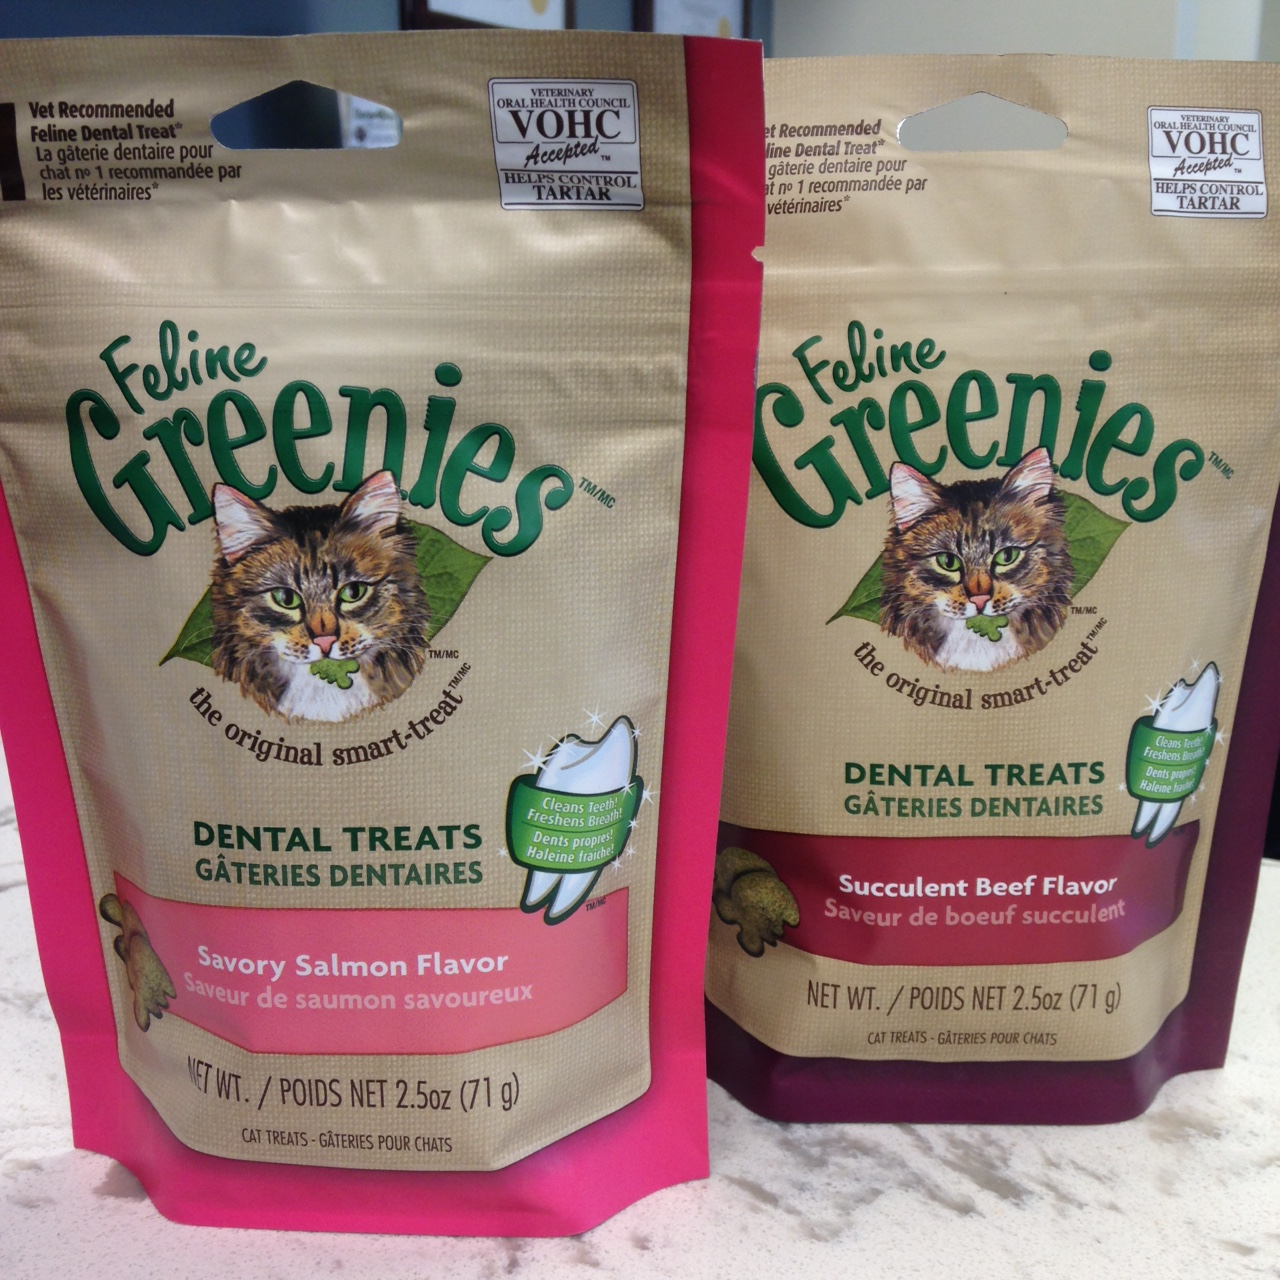 Two bags of Feline Greenies dental treats